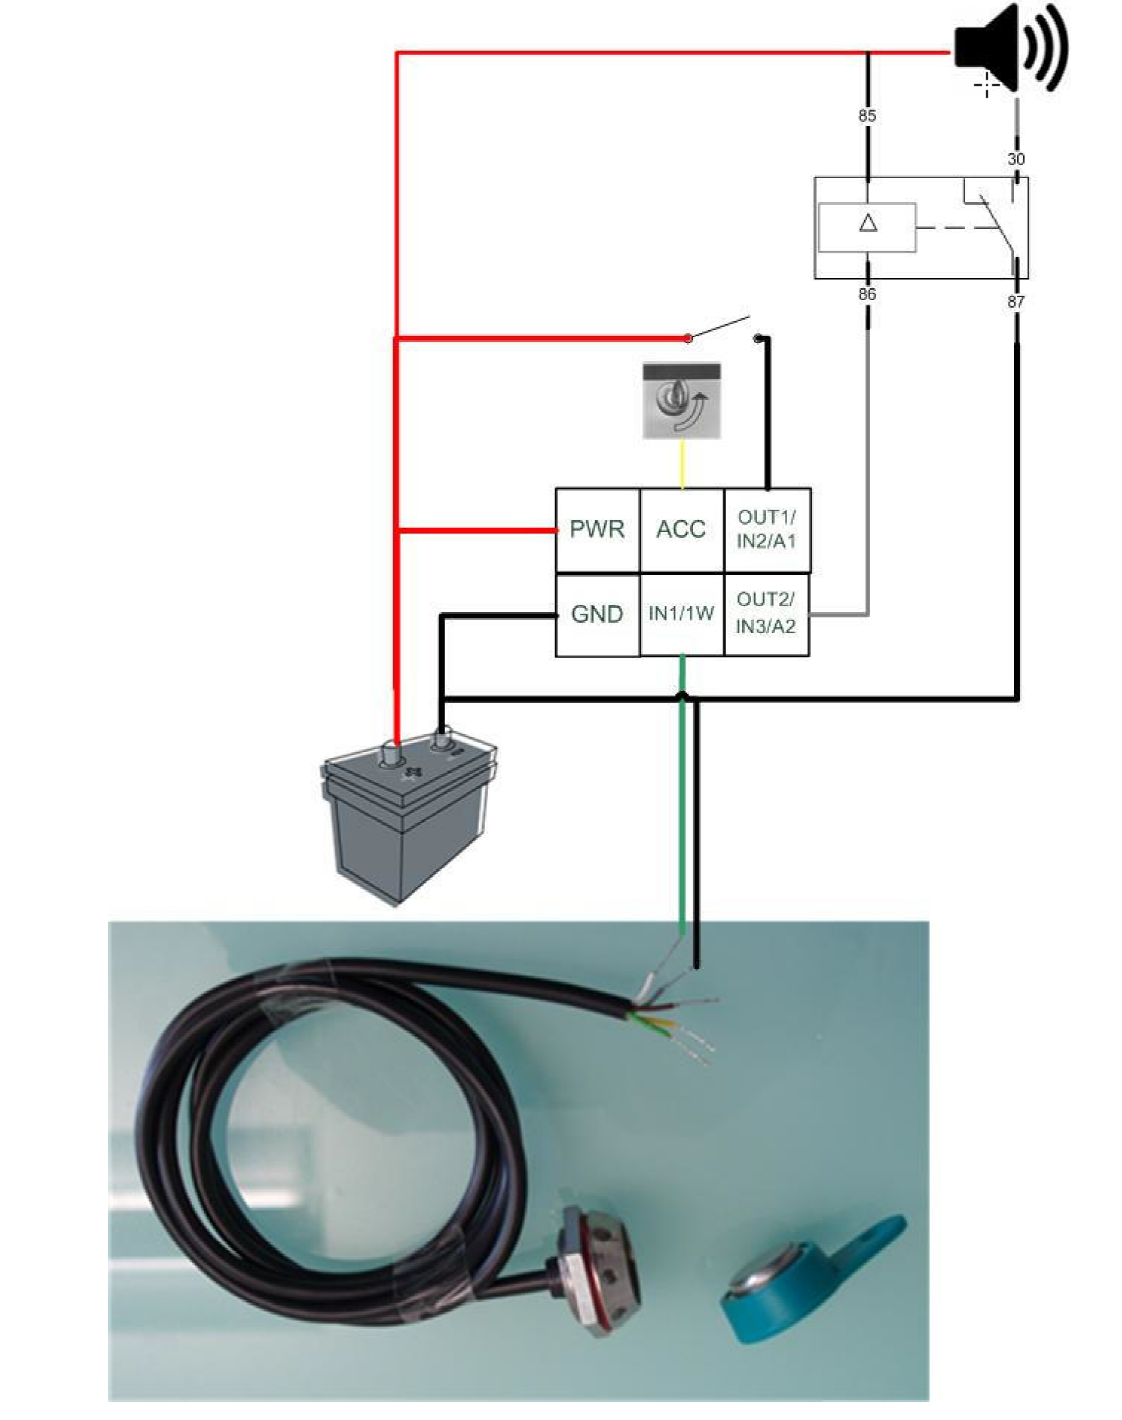 image2015 5 12 14%3A5%3A12?version=1&modificationDate=1431432359069&api=v2 gps dynamic einbauanleitung ak1 Basic Electrical Wiring Diagrams at cos-gaming.co